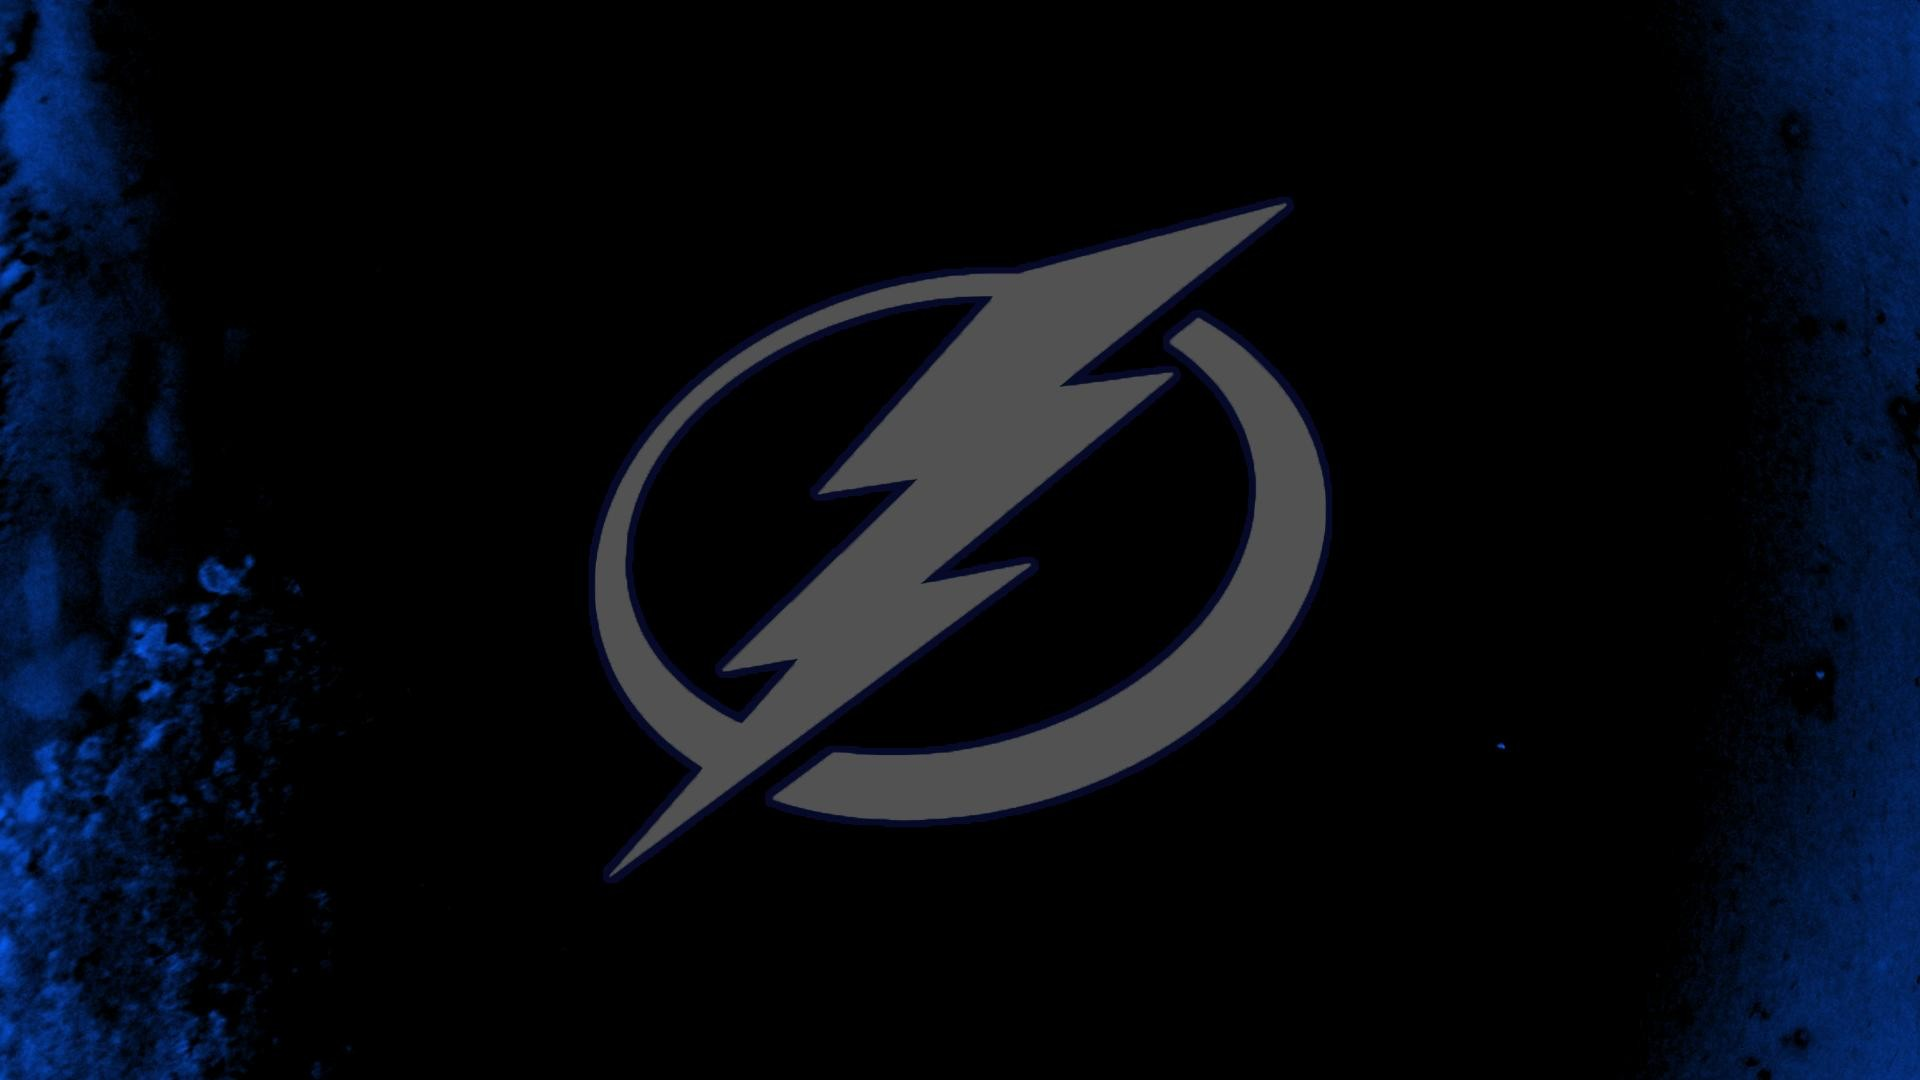 1920x1080 Tampa Bay Lightning wallpapers HD